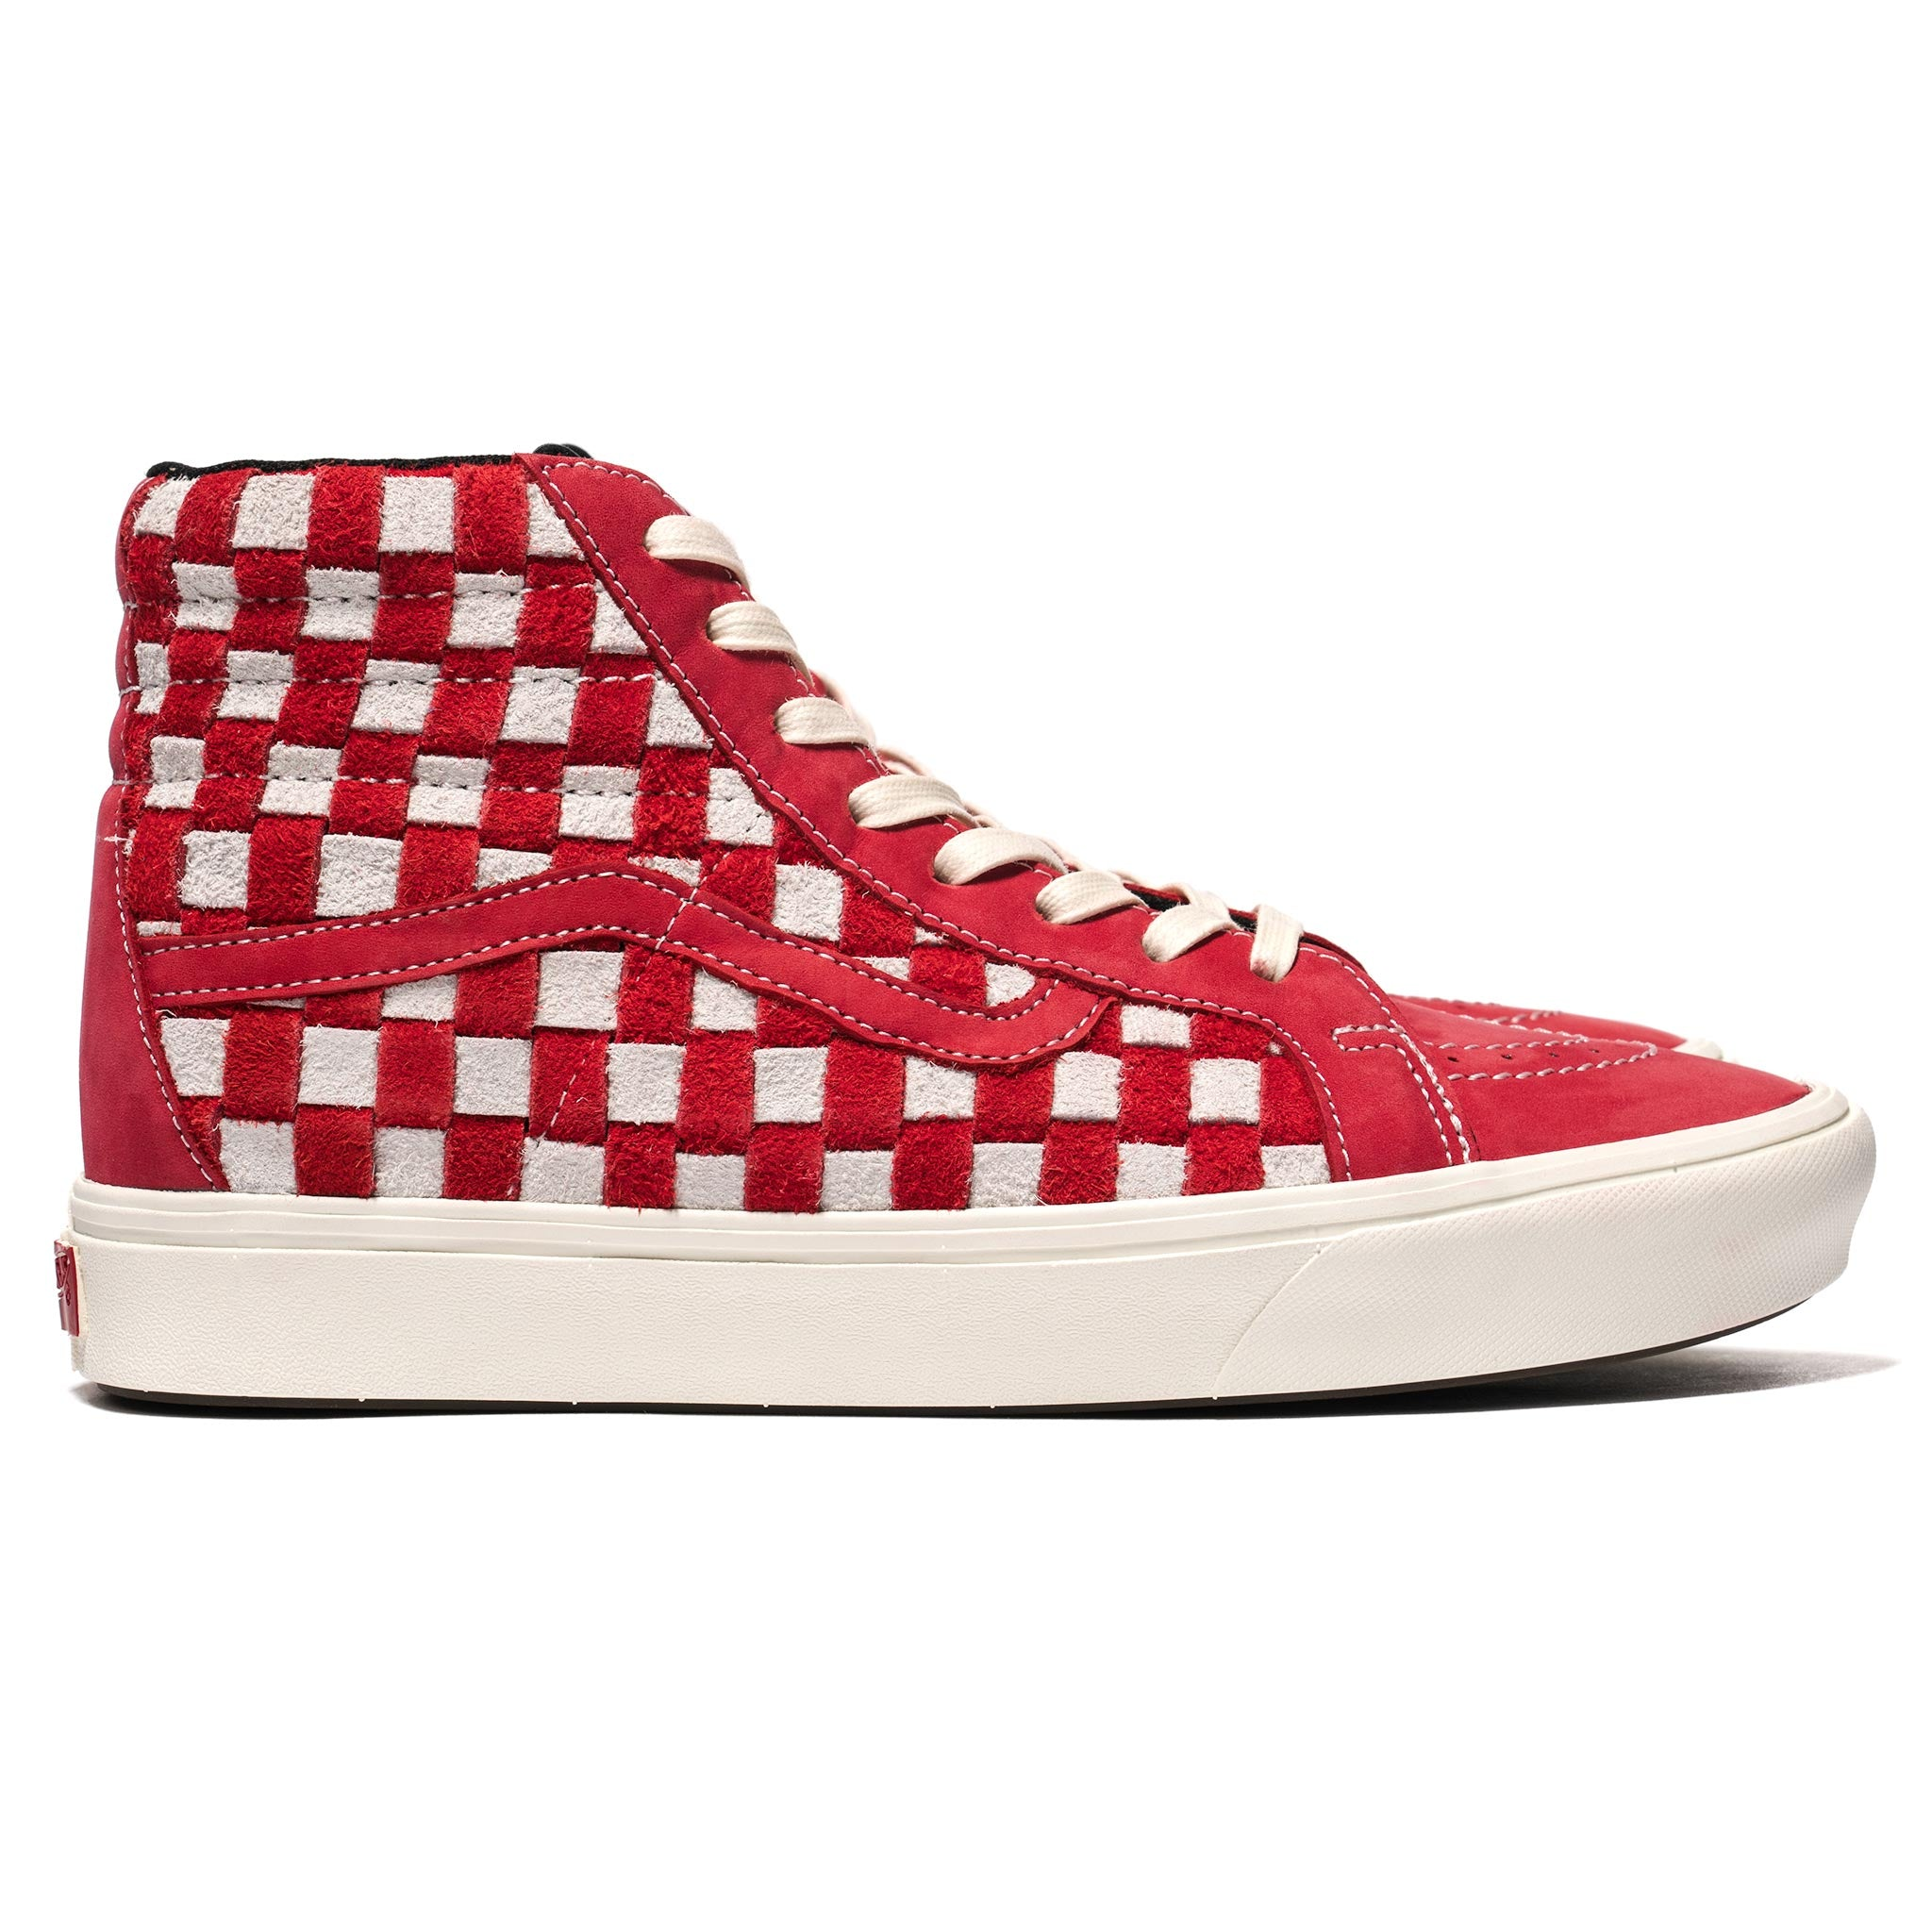 8be667c400 SK8-Hi Reissue LX Comfycush (Hairy Suede  Nubuck) Racing Red – HAVEN